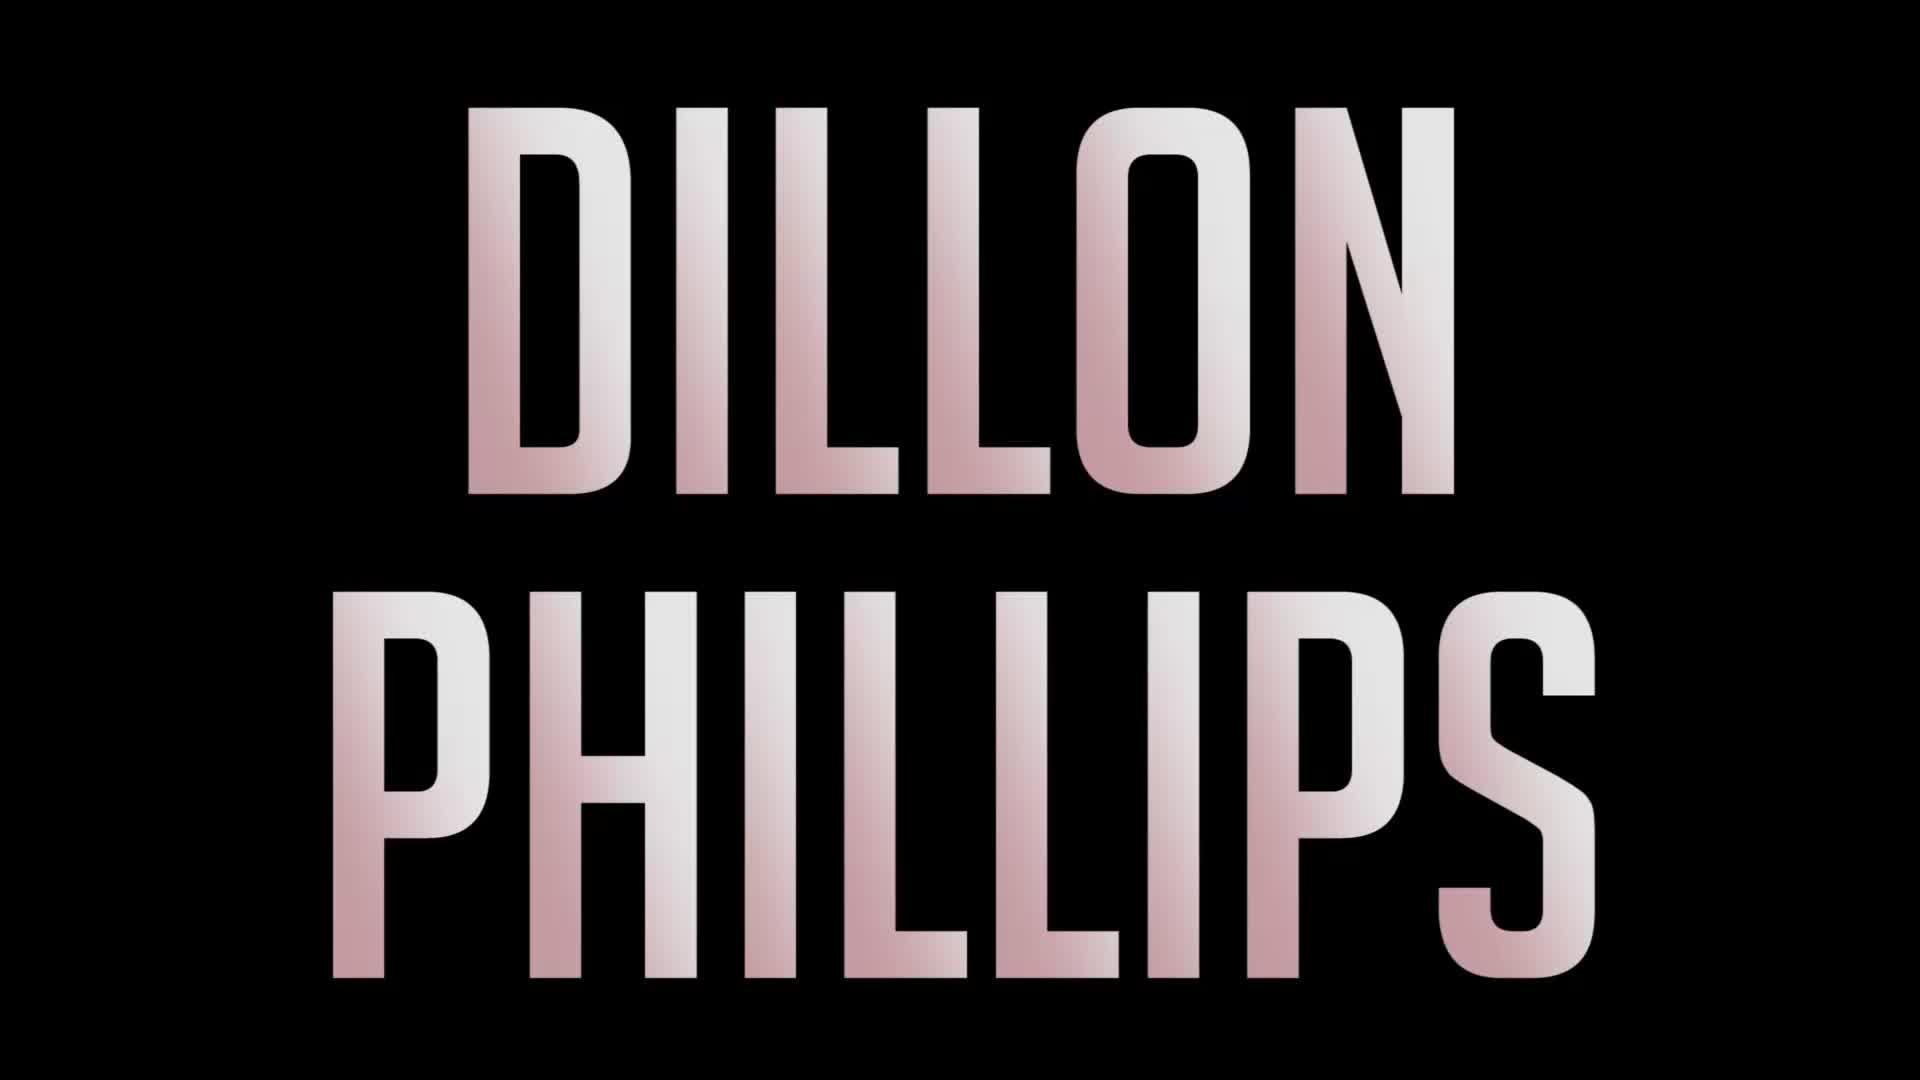 Dillon Phillips #RaisedInTheEFL